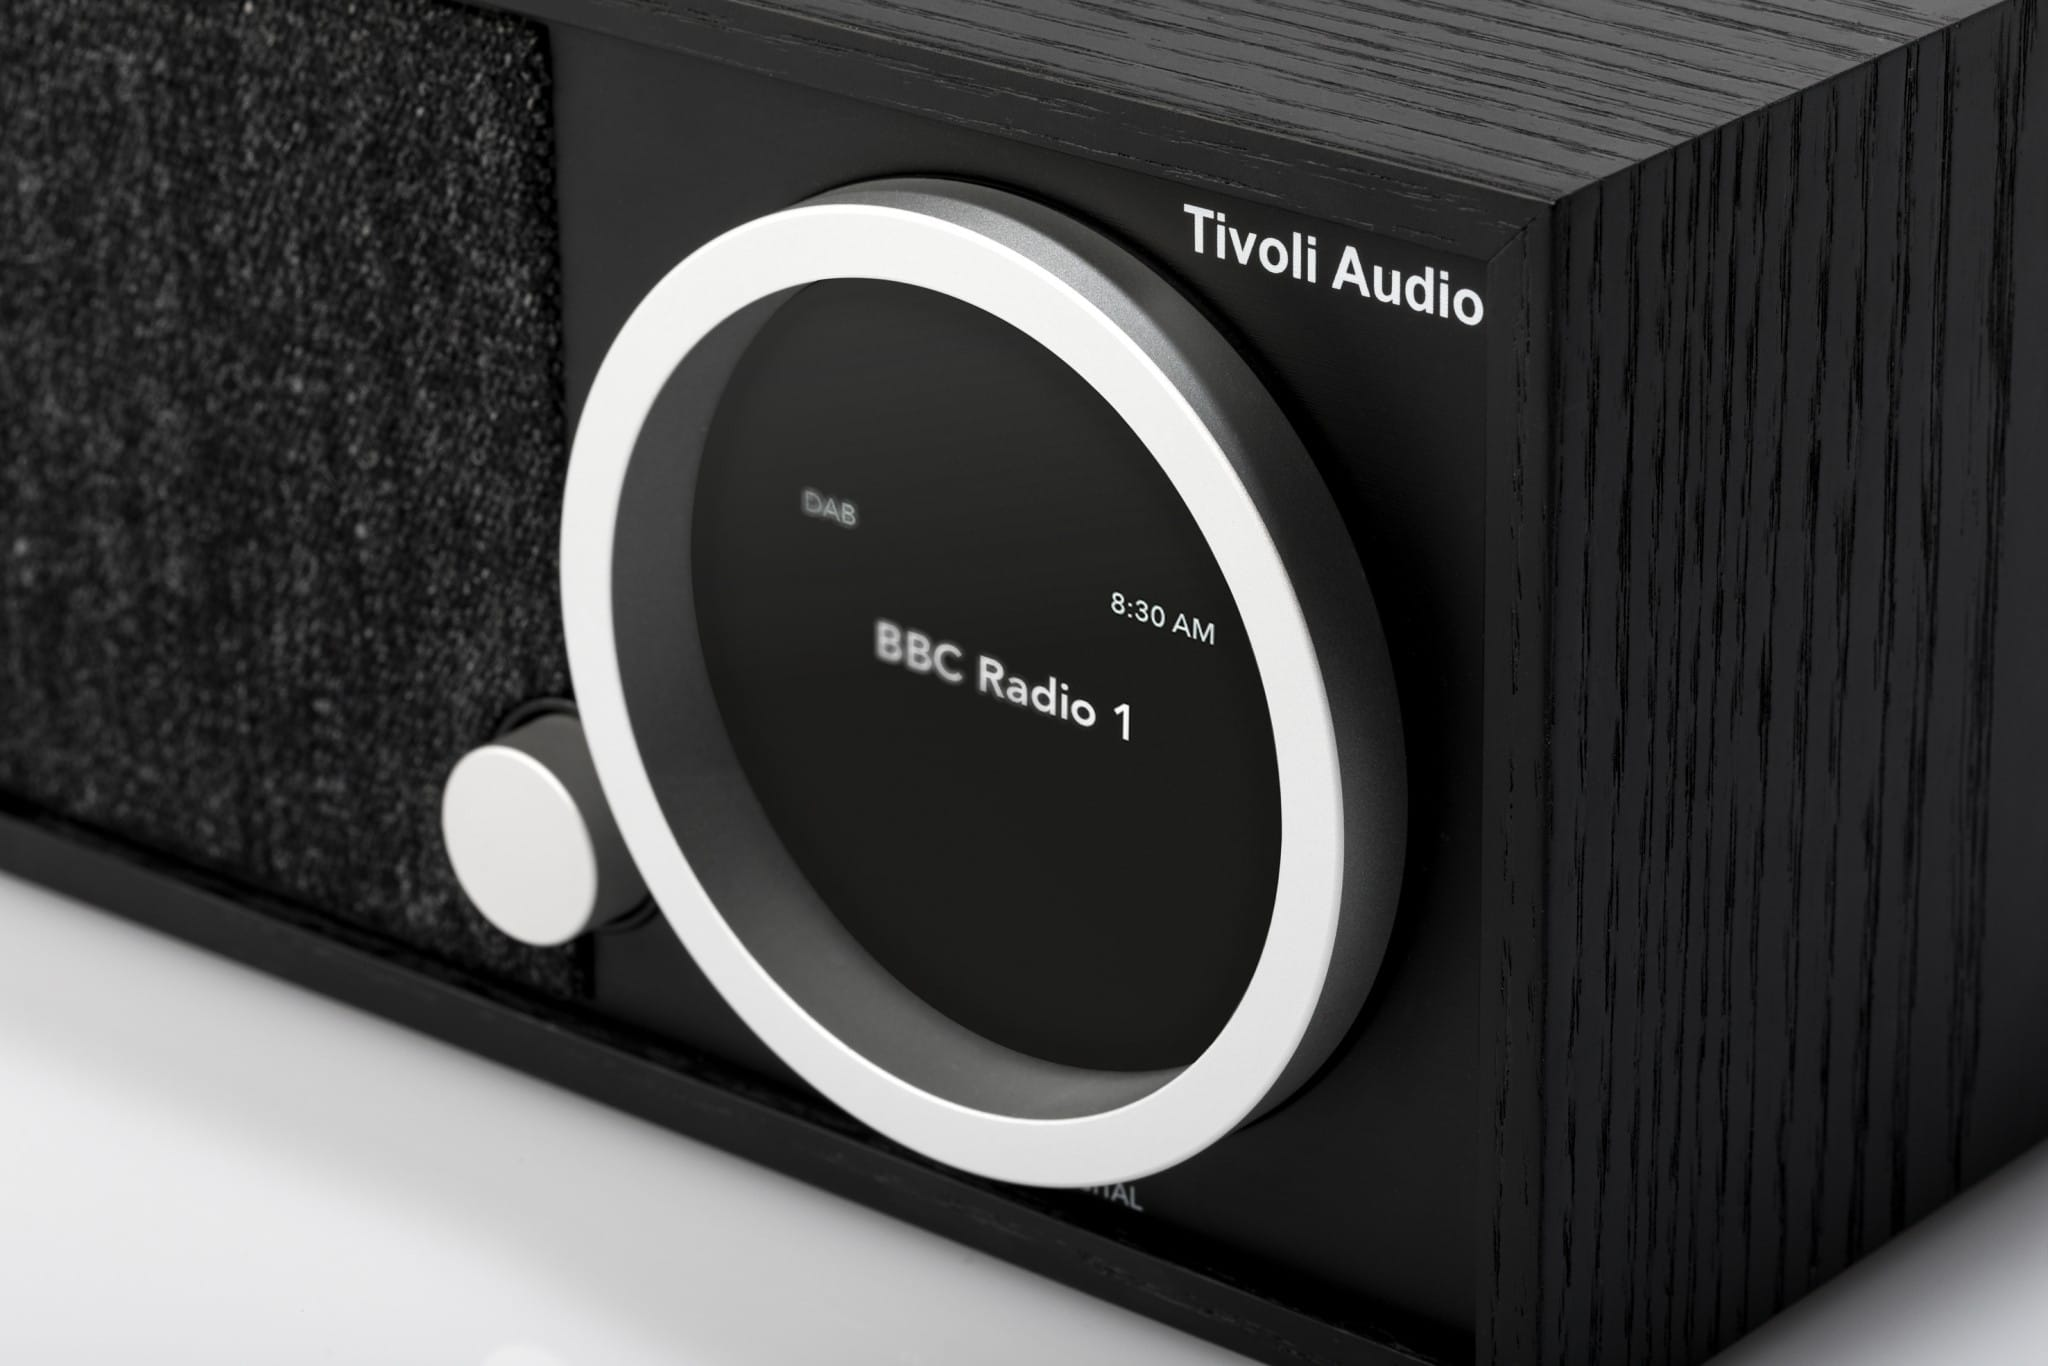 Tivoli Audio Digital Tivoli Audio Model One Digital Multi Room And Streaming